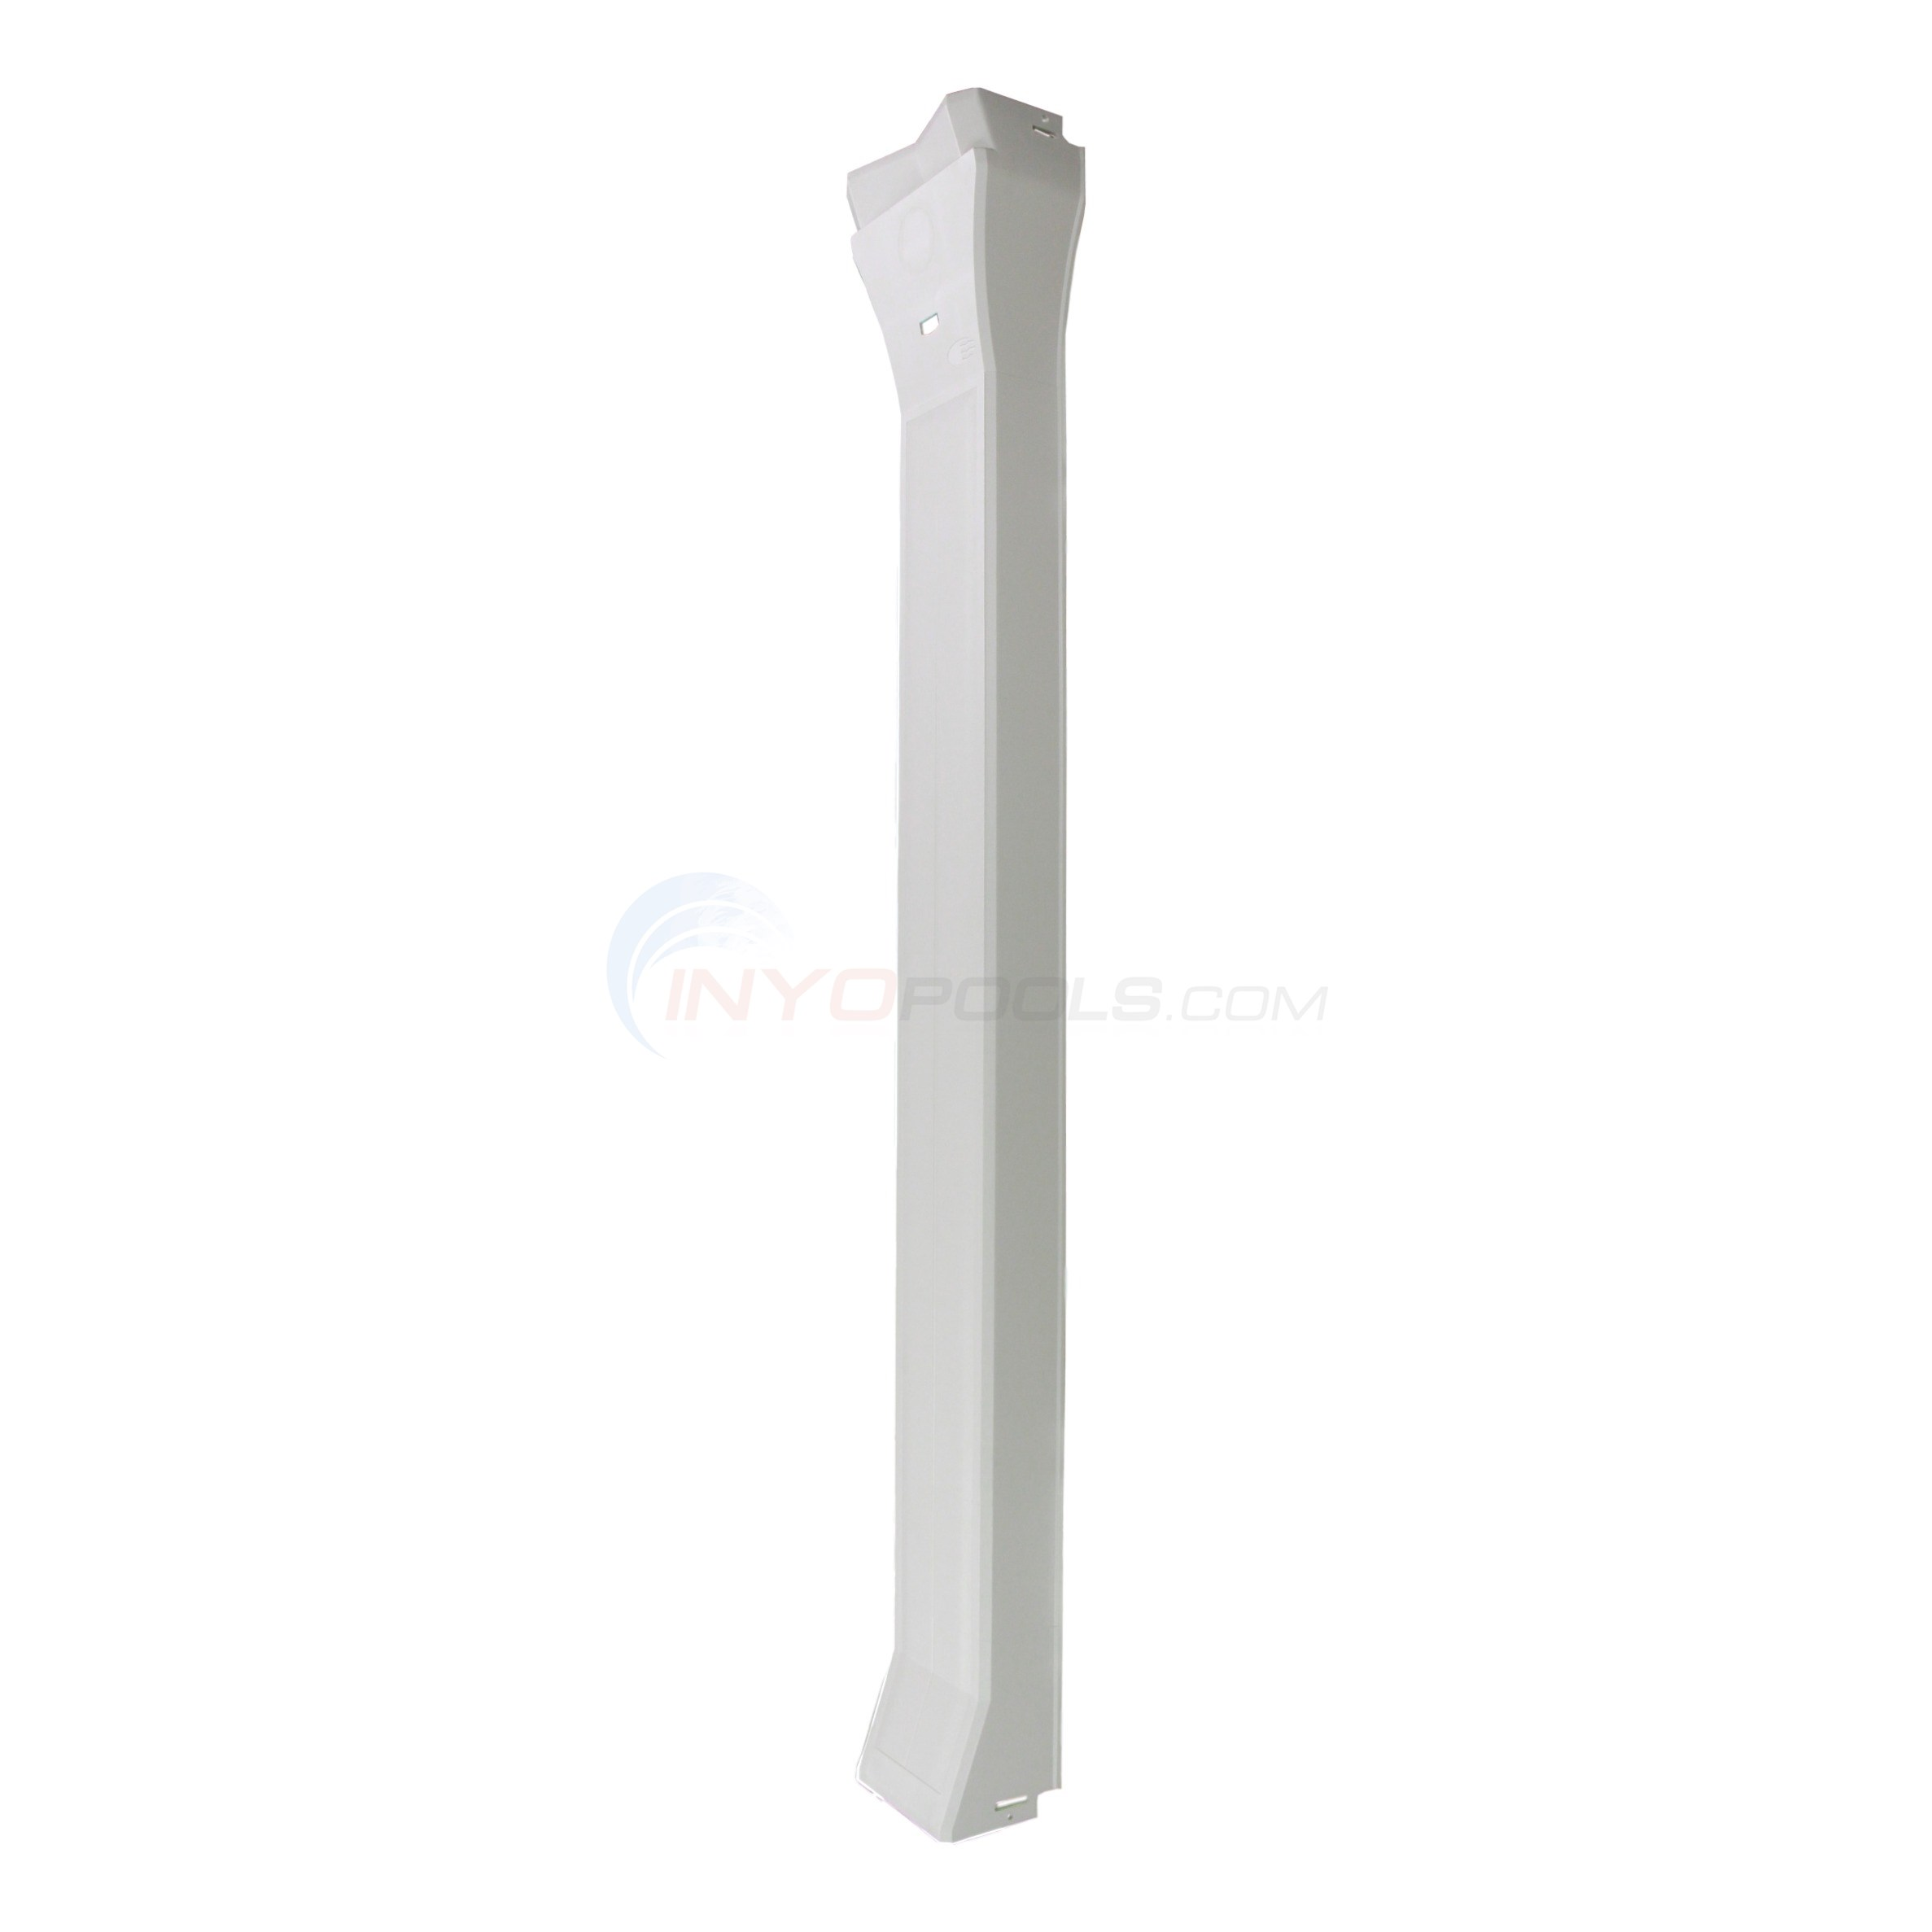 "Upright Cover Pearl Influence Resin 54"" (Single)"